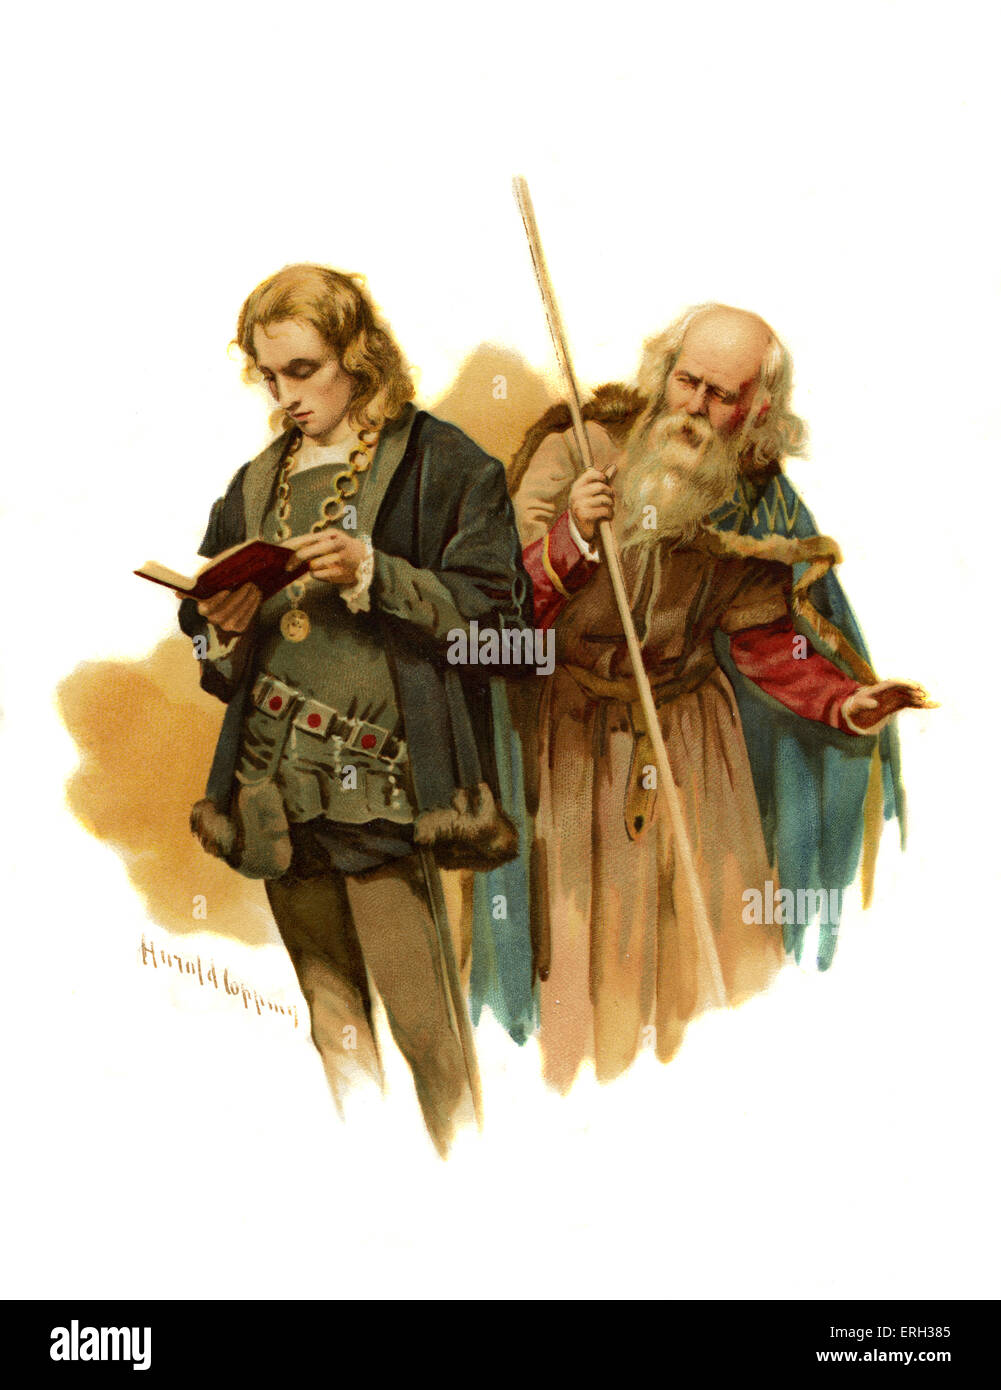 Polonius addresses Hamlet who is reading in Hamlet, Prince of Denmark by William Shakespeare. Act II, Scene 2: Queen: - Stock Image